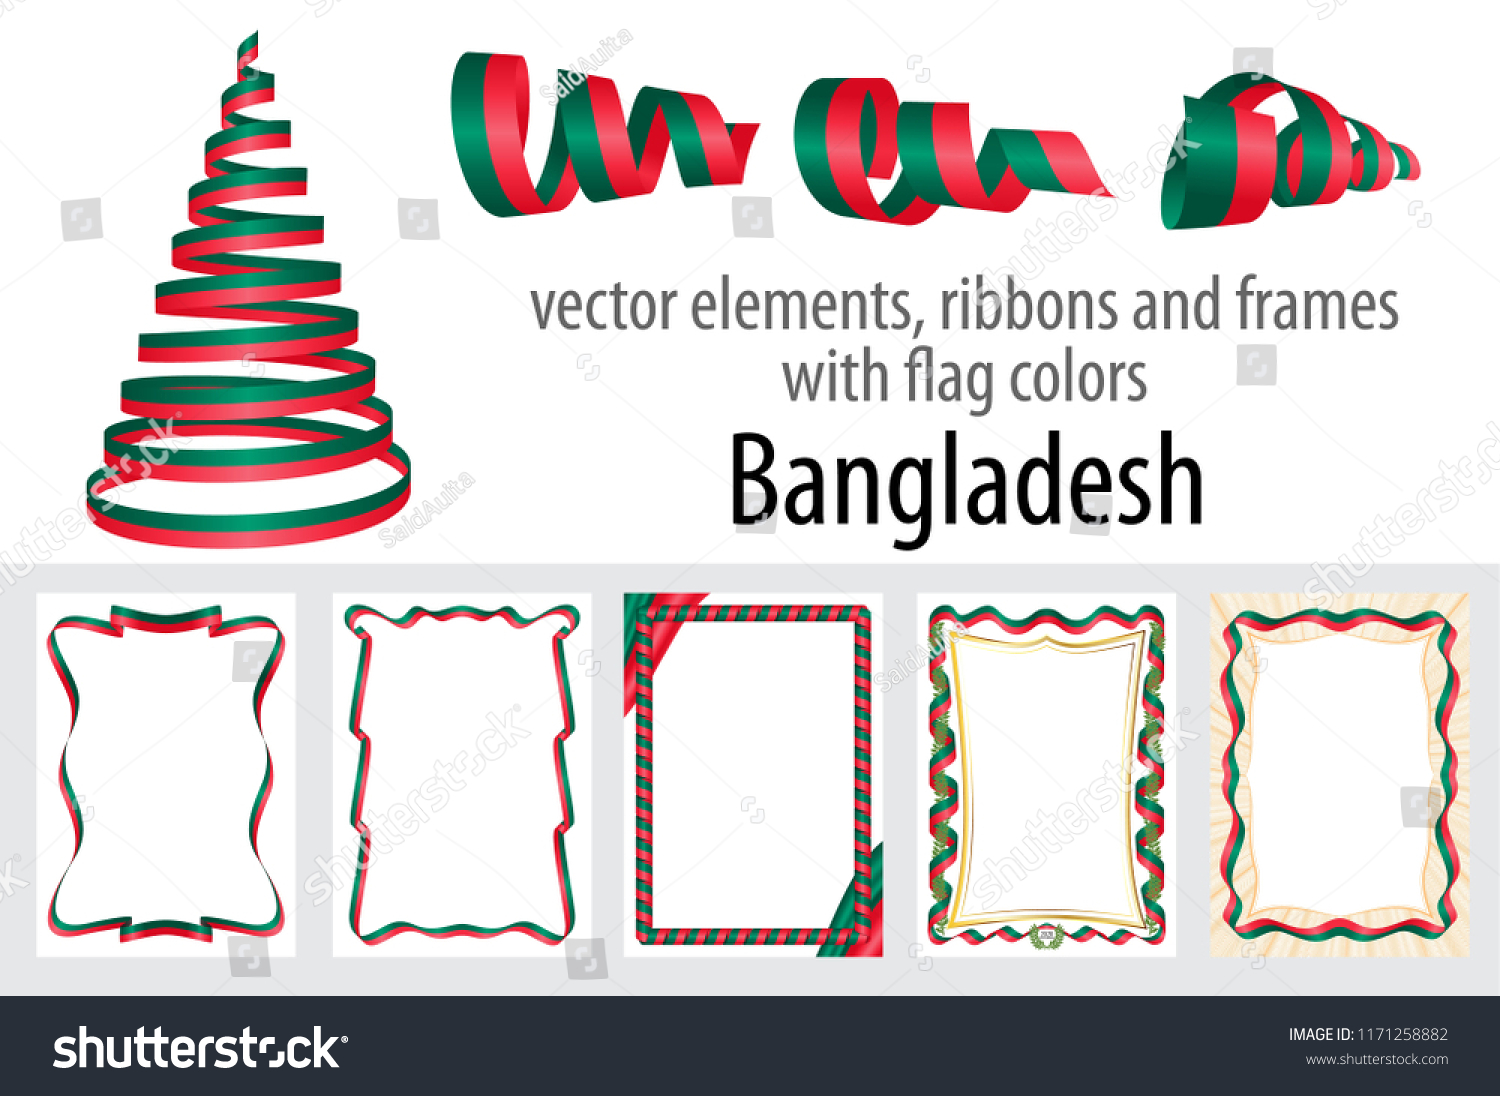 vector elements ribbons frames flag colors stock vector royalty